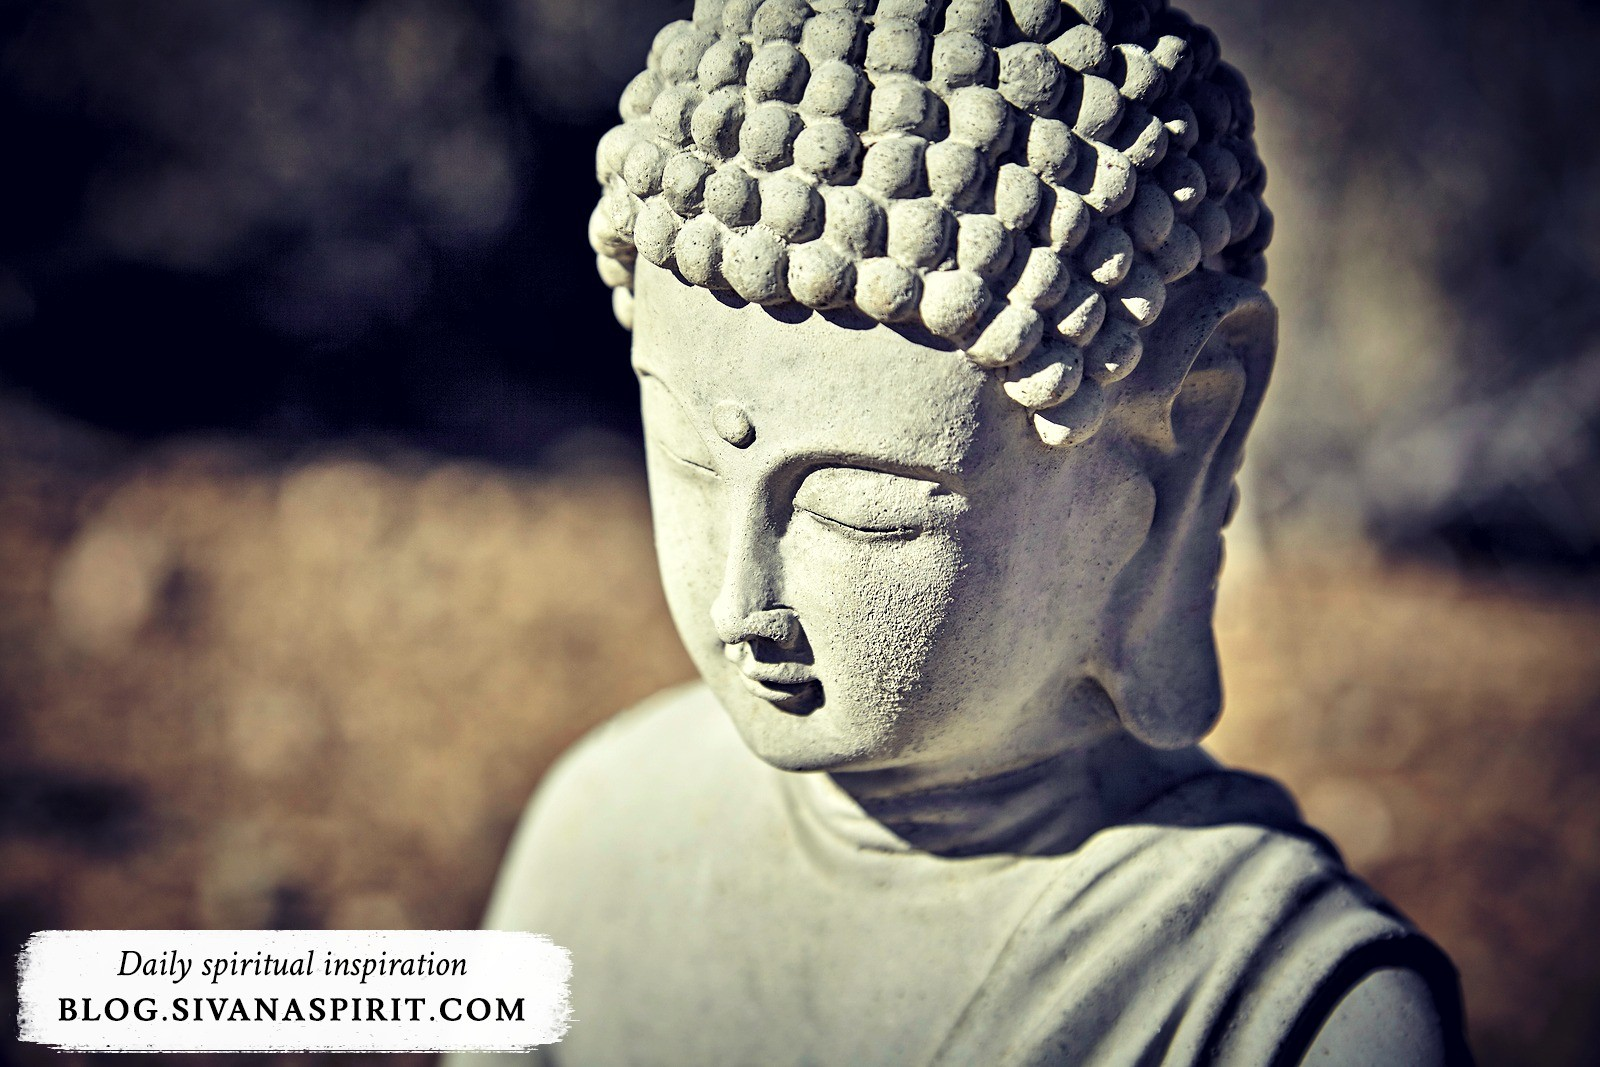 5 Crucial Pieces Of Self Love Advice From The Buddha